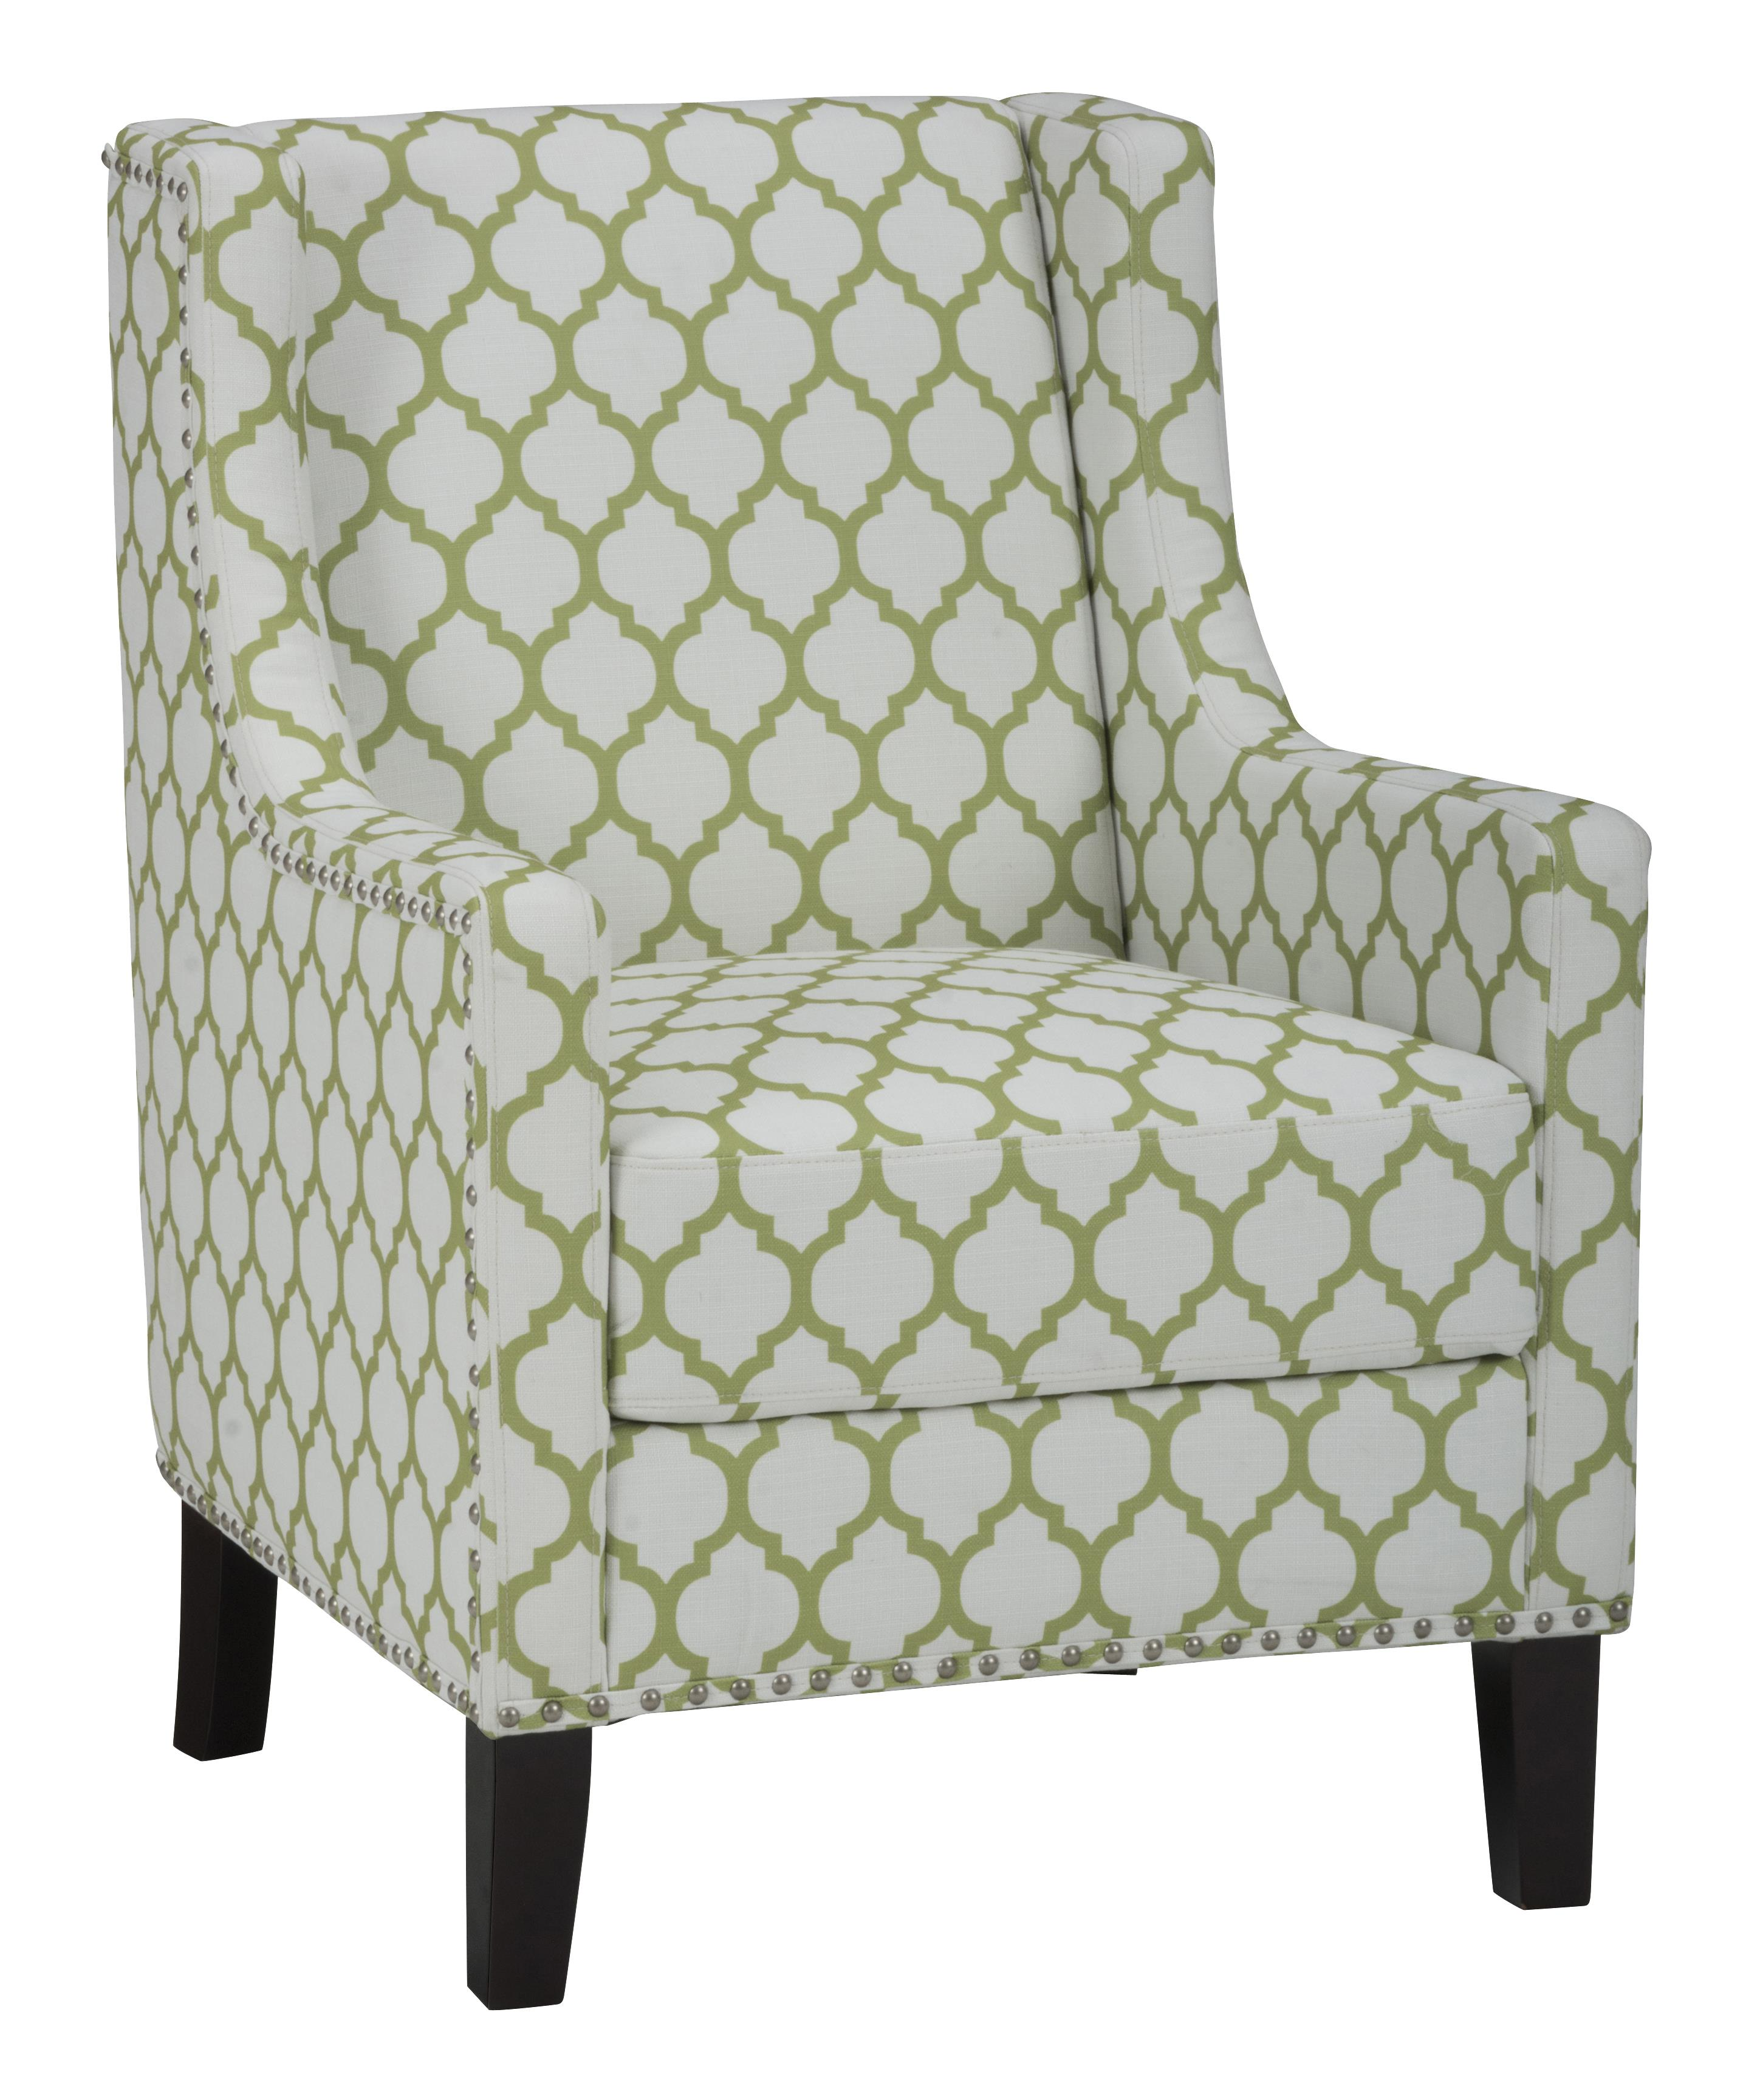 Jofran Accent Chairs Jeanie Club Chair in Avacado Green - Item Number: JEANIE-CH-AVCD